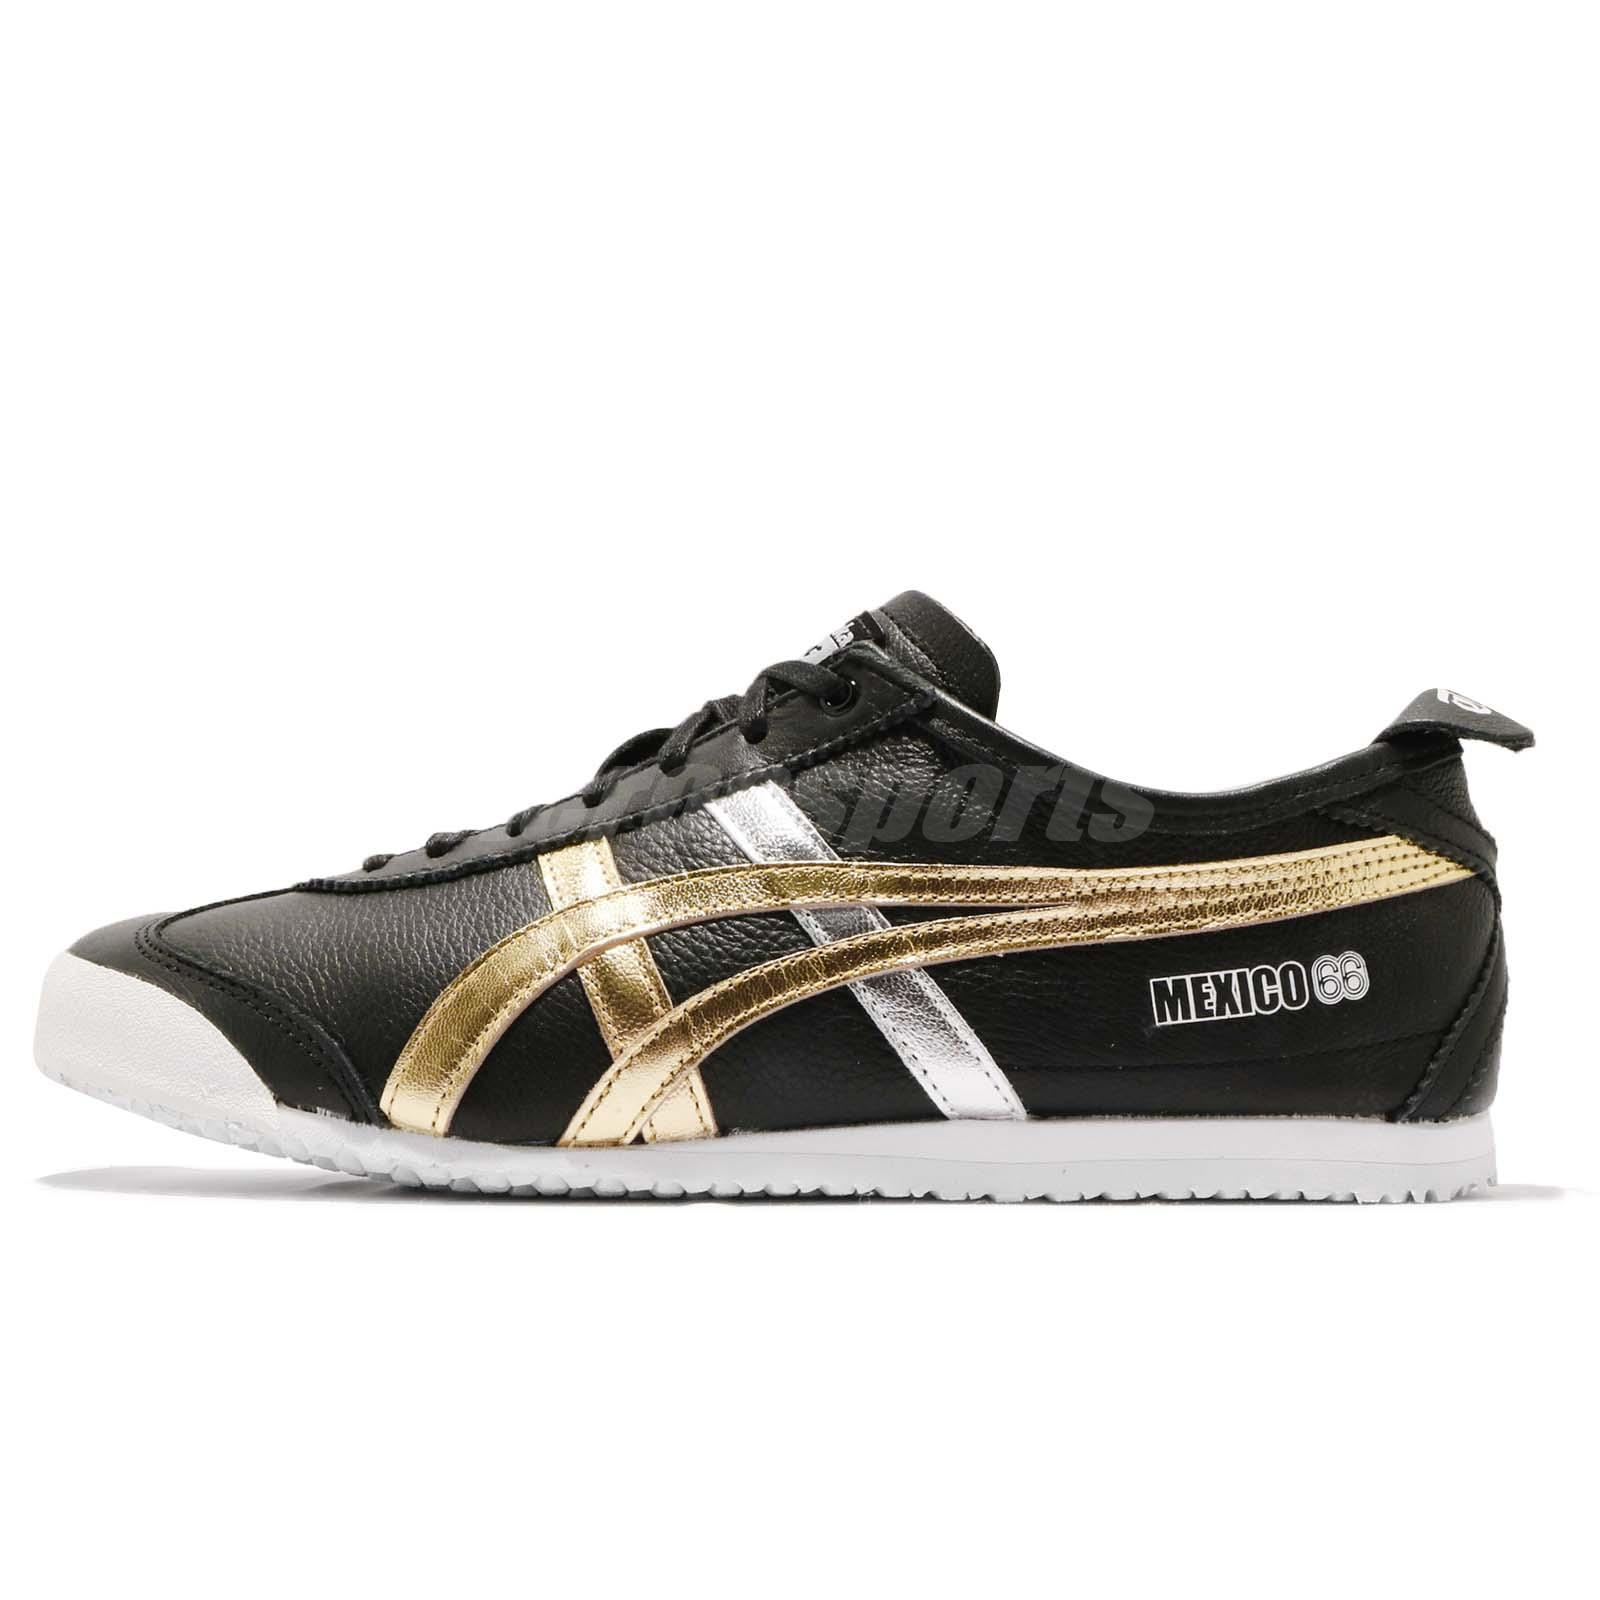 new arrival 3619c 79046 Asics Onitsuka Tiger Mexico 66 Black Gold Men Running Shoes Sneakers  D5V2L-9094